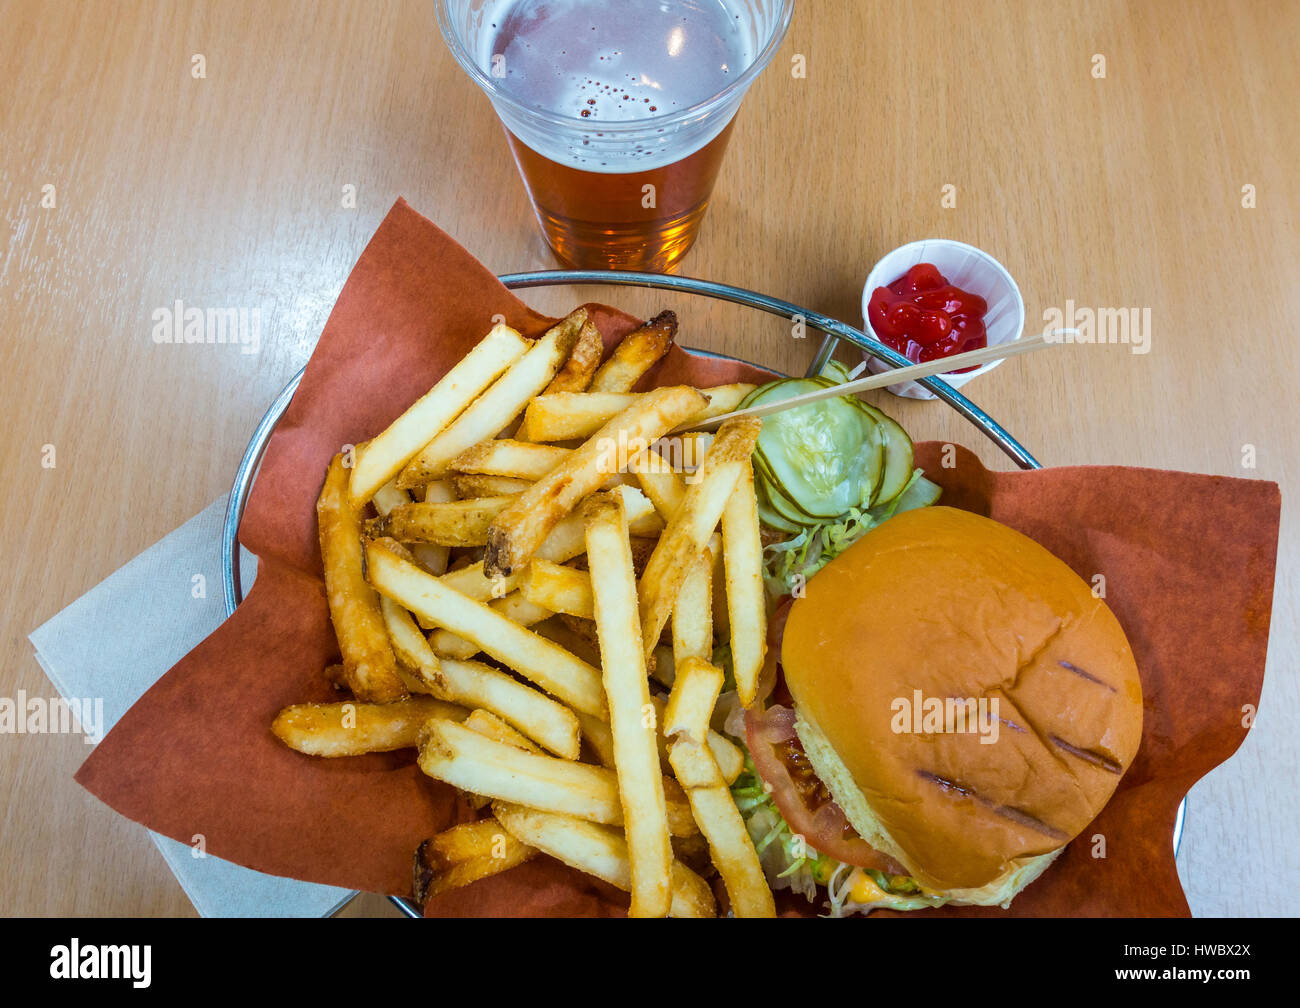 Burger, fries and beer Stock Photo